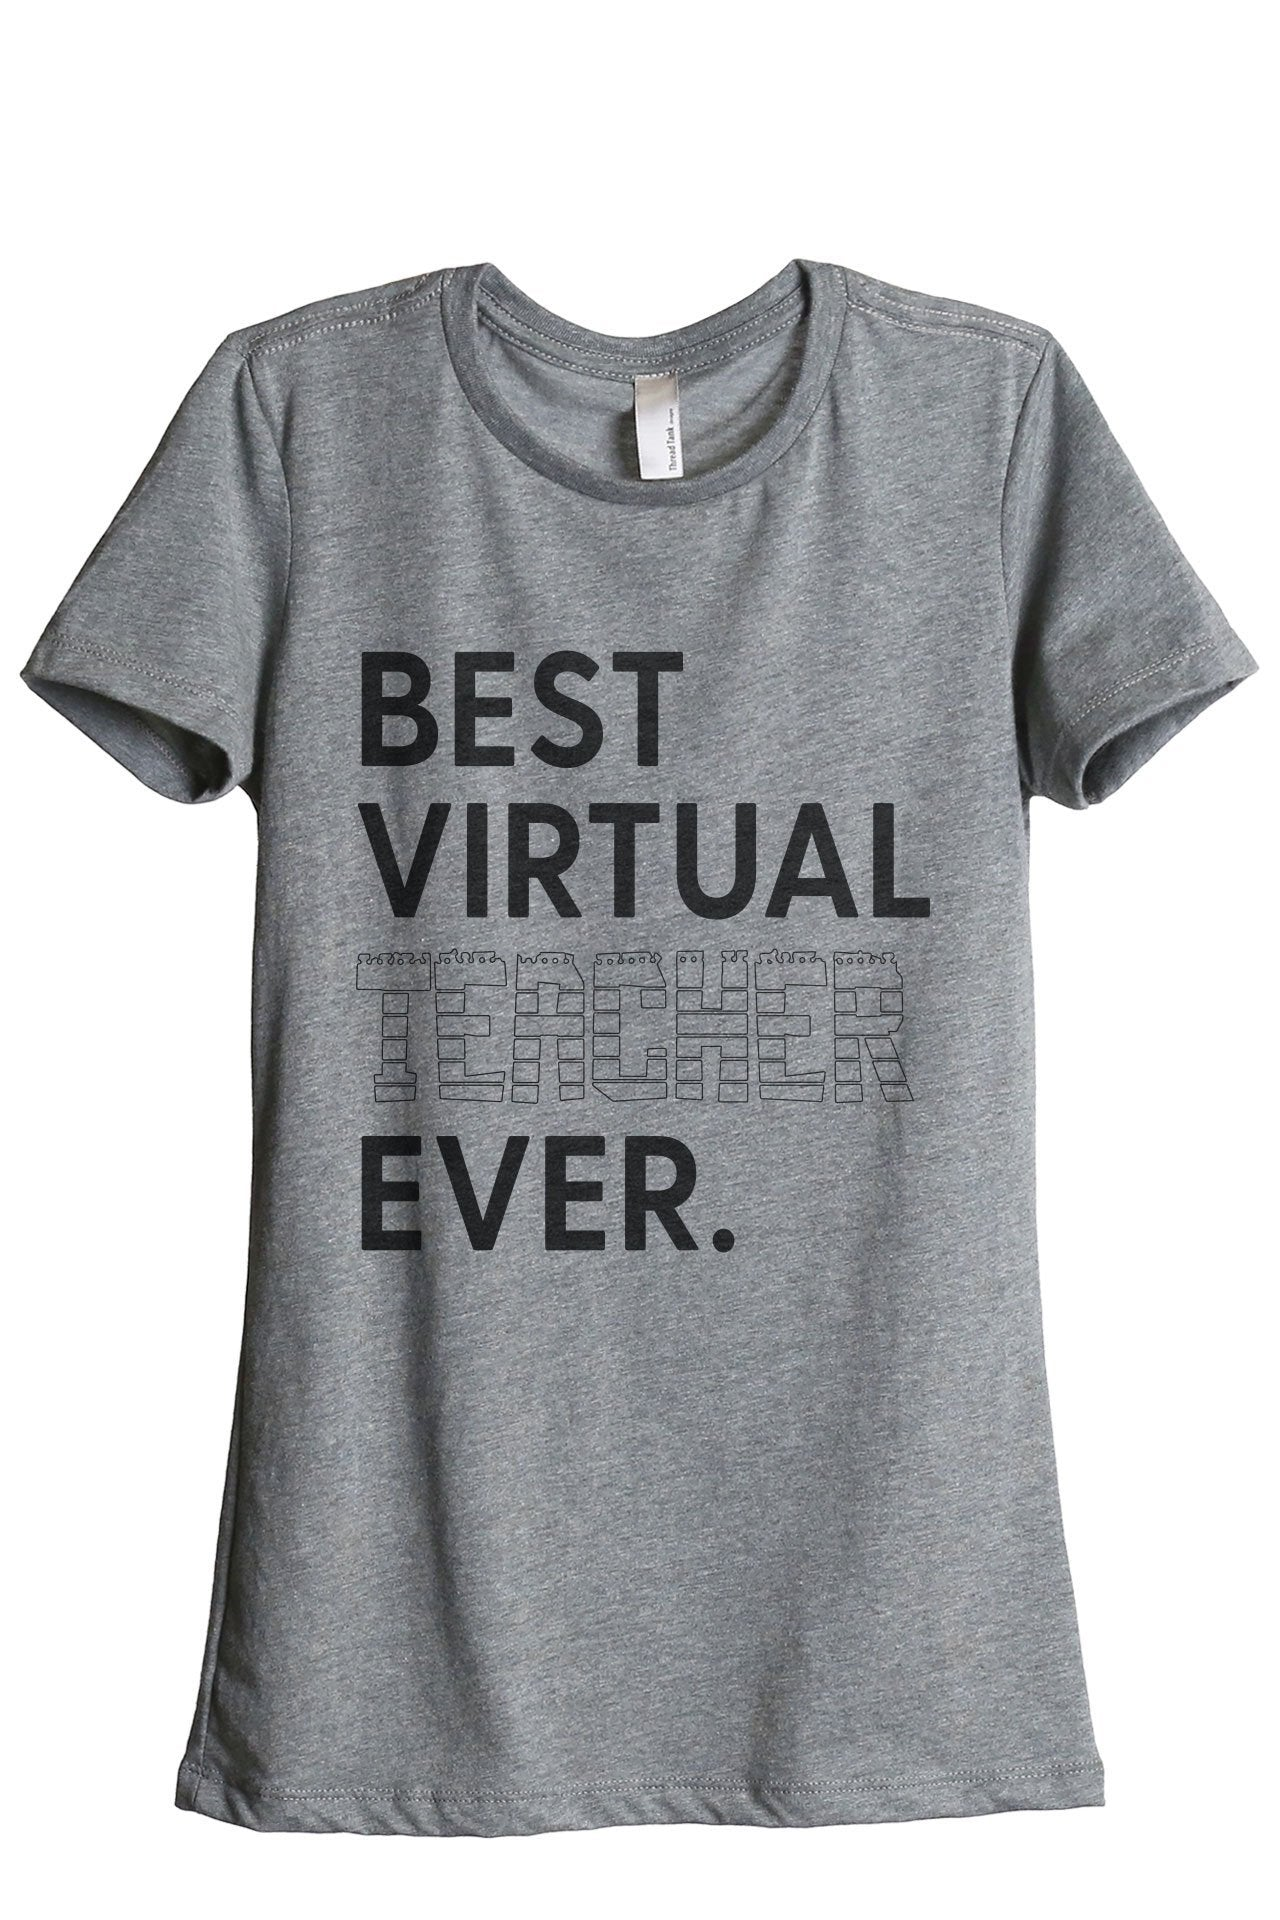 Best Virtual Teacher Ever Women's Relaxed Crewneck T-Shirt Top Tee Heather Grey